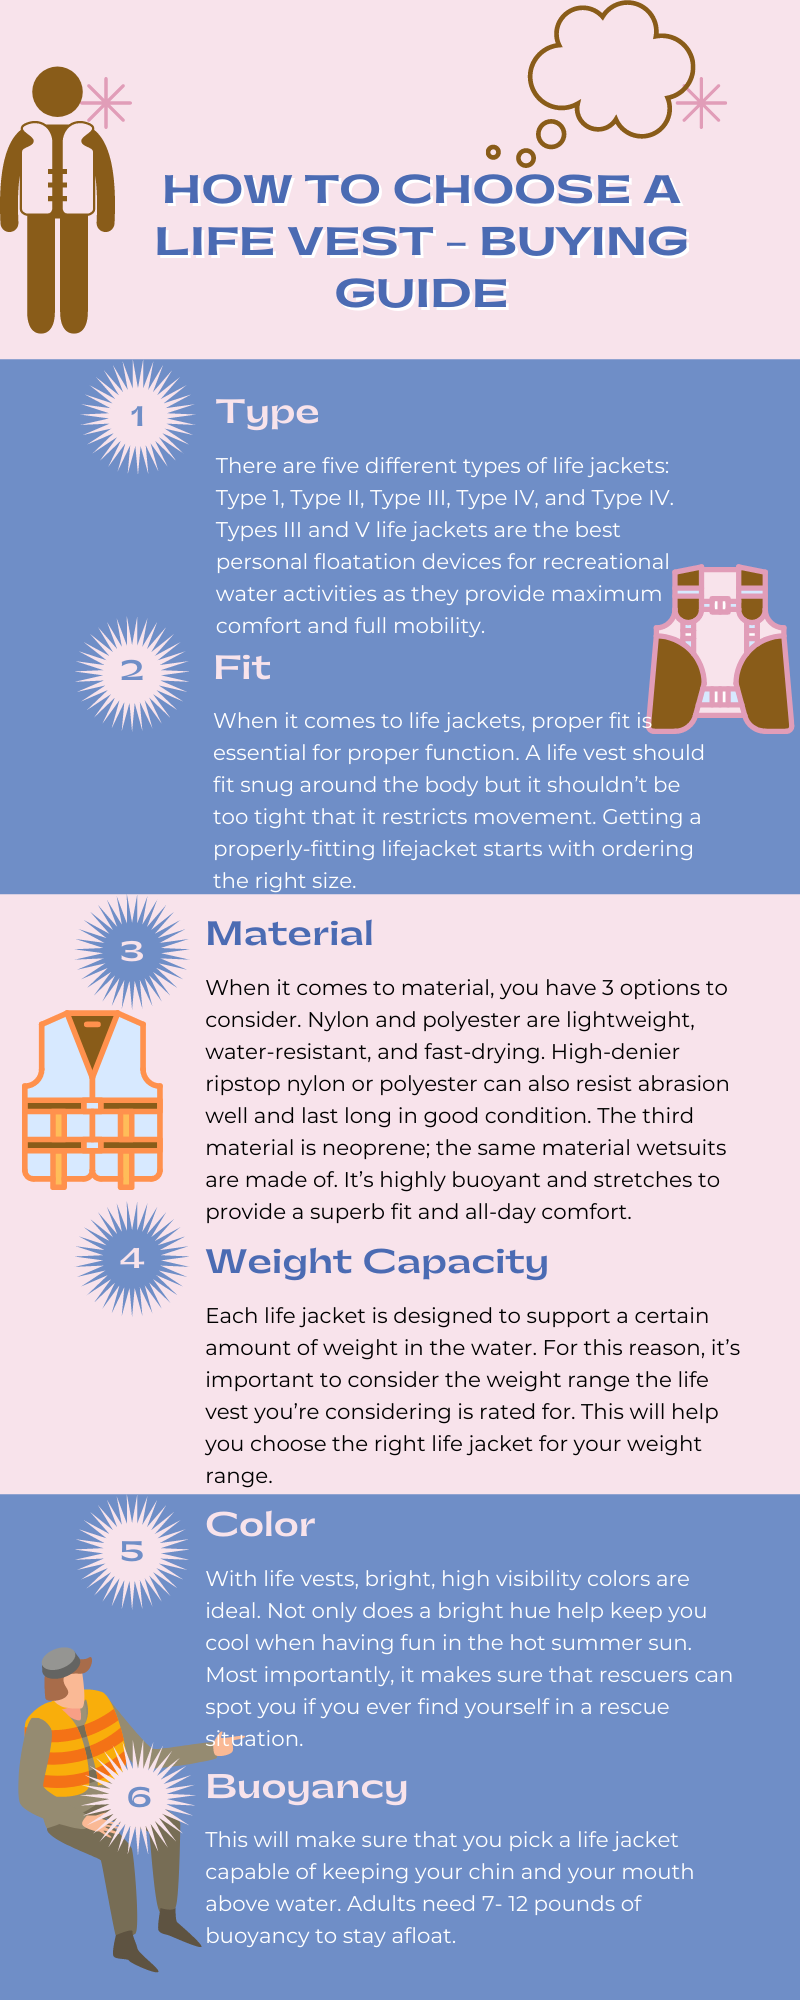 Infographic on how to choose a life vest